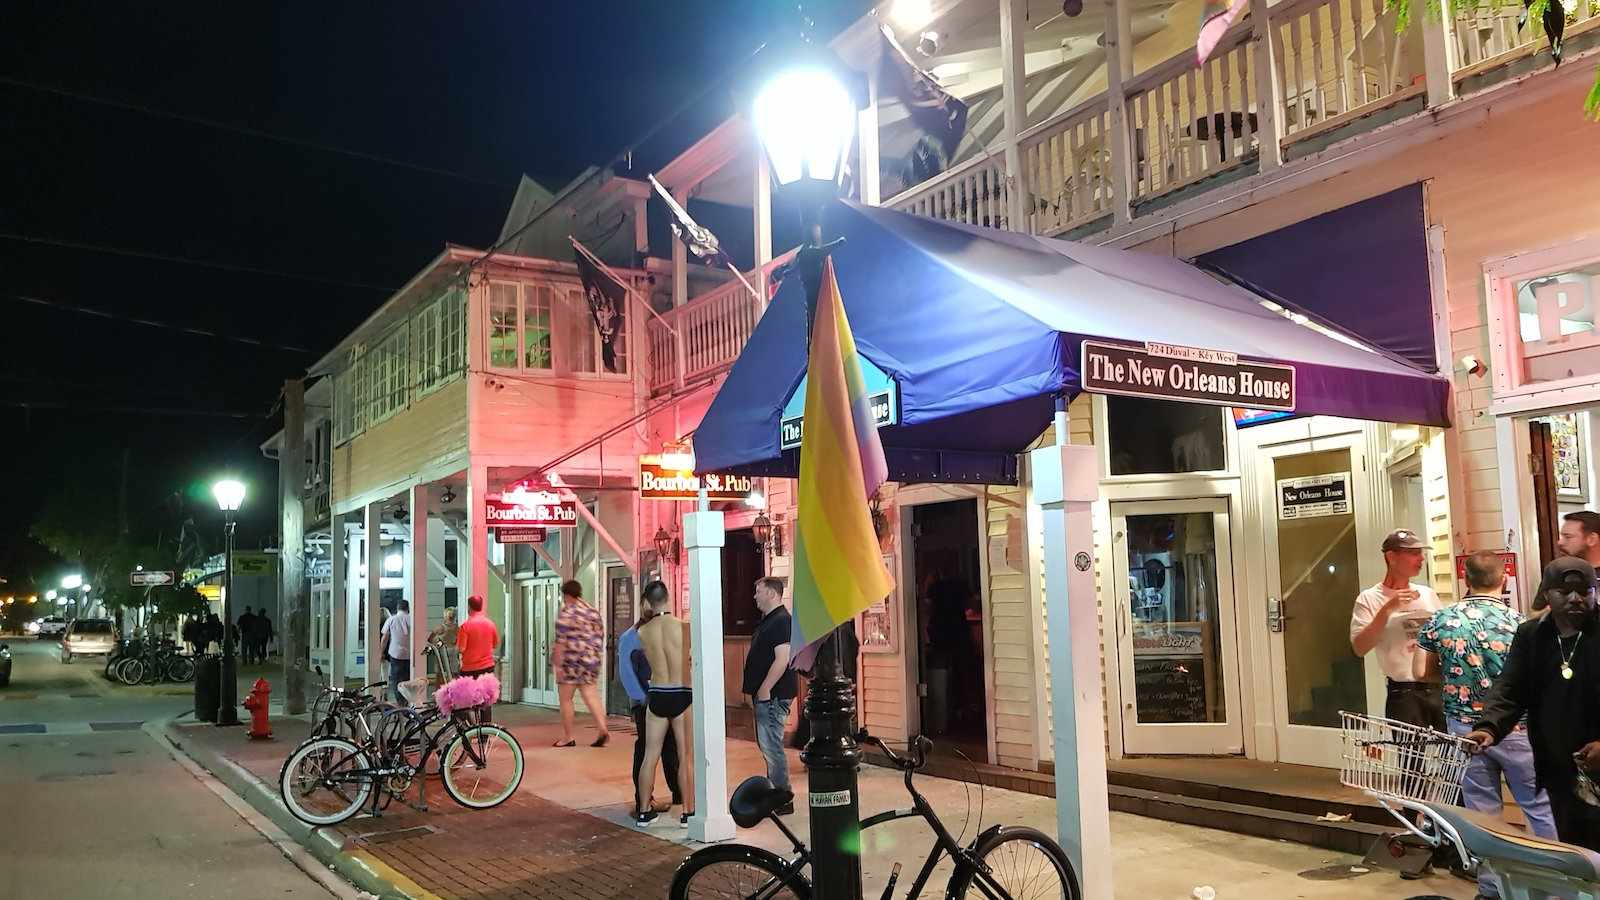 If you want to be in the heart of the action, The New Orleans House is right on the main gay street in Key West